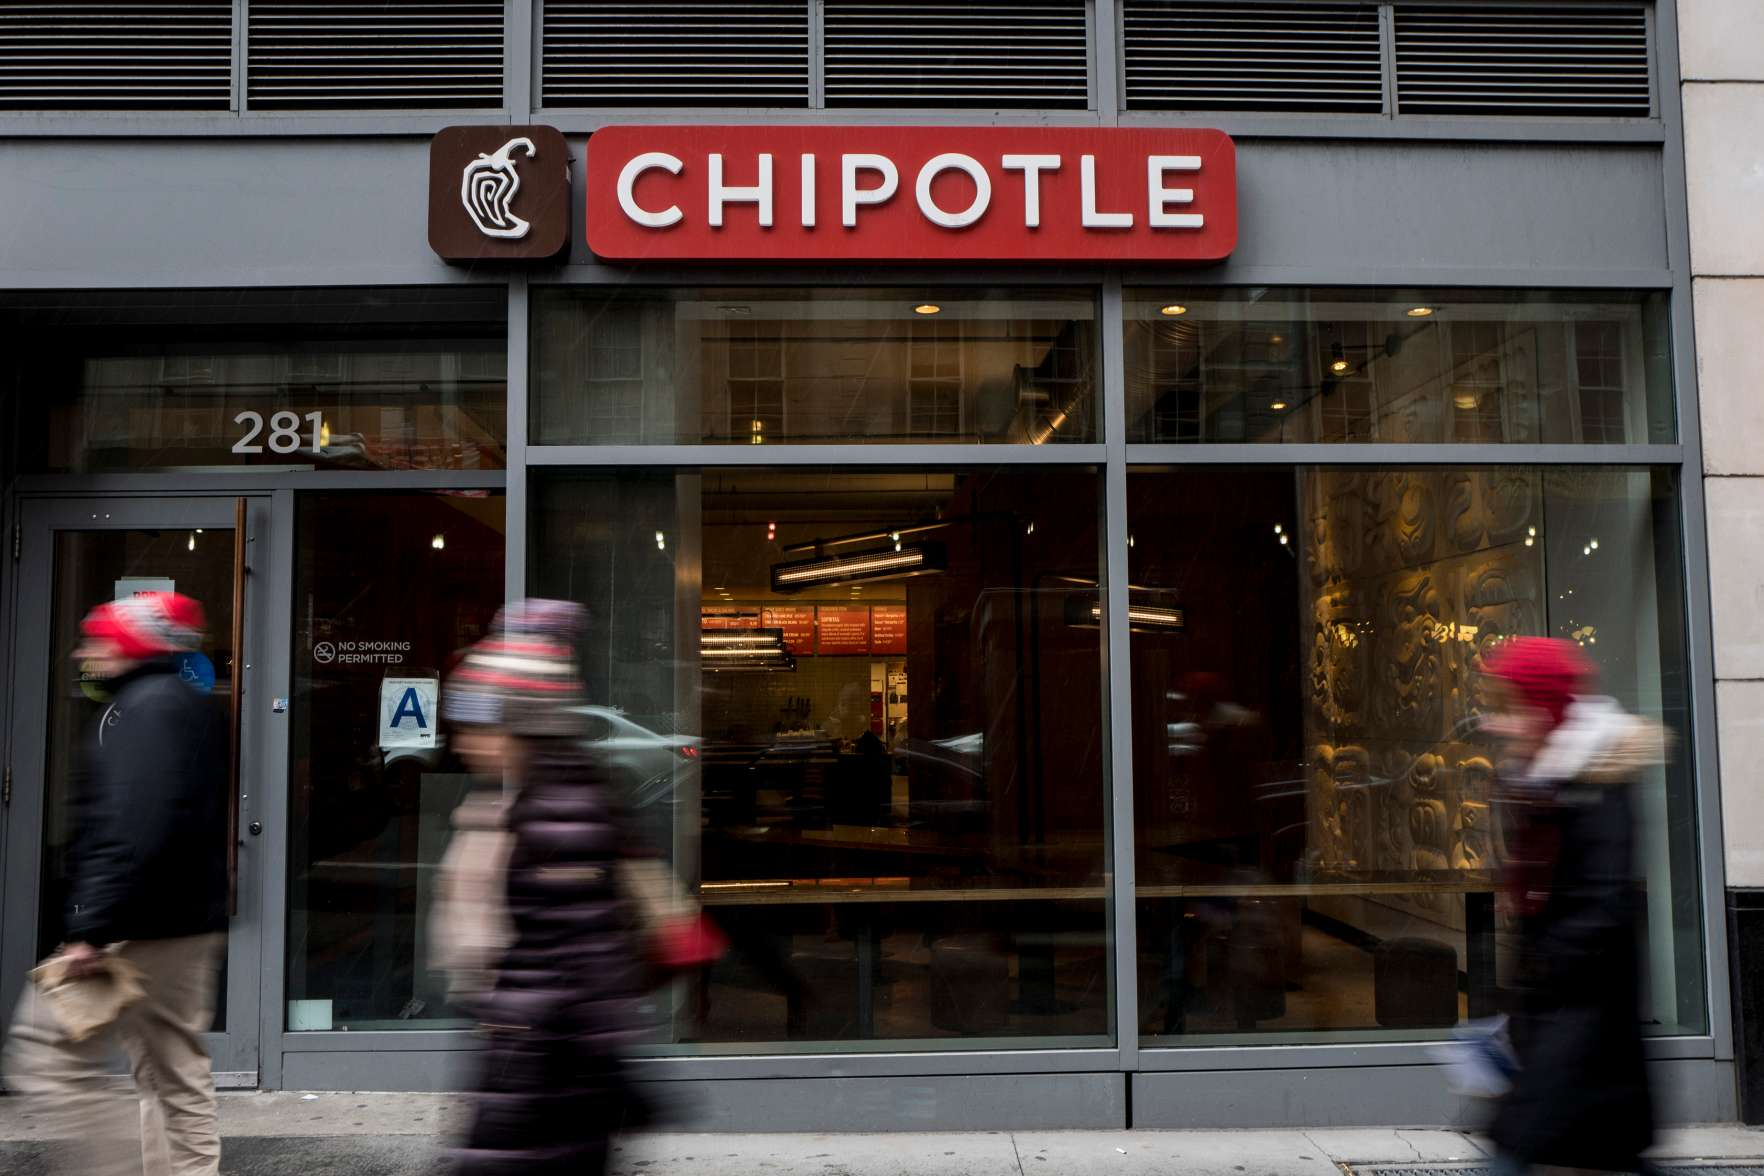 People walk past a Chipotle restaurant on Broadway in Lower Manhattan on Feb. 8, 2016 in New York City.